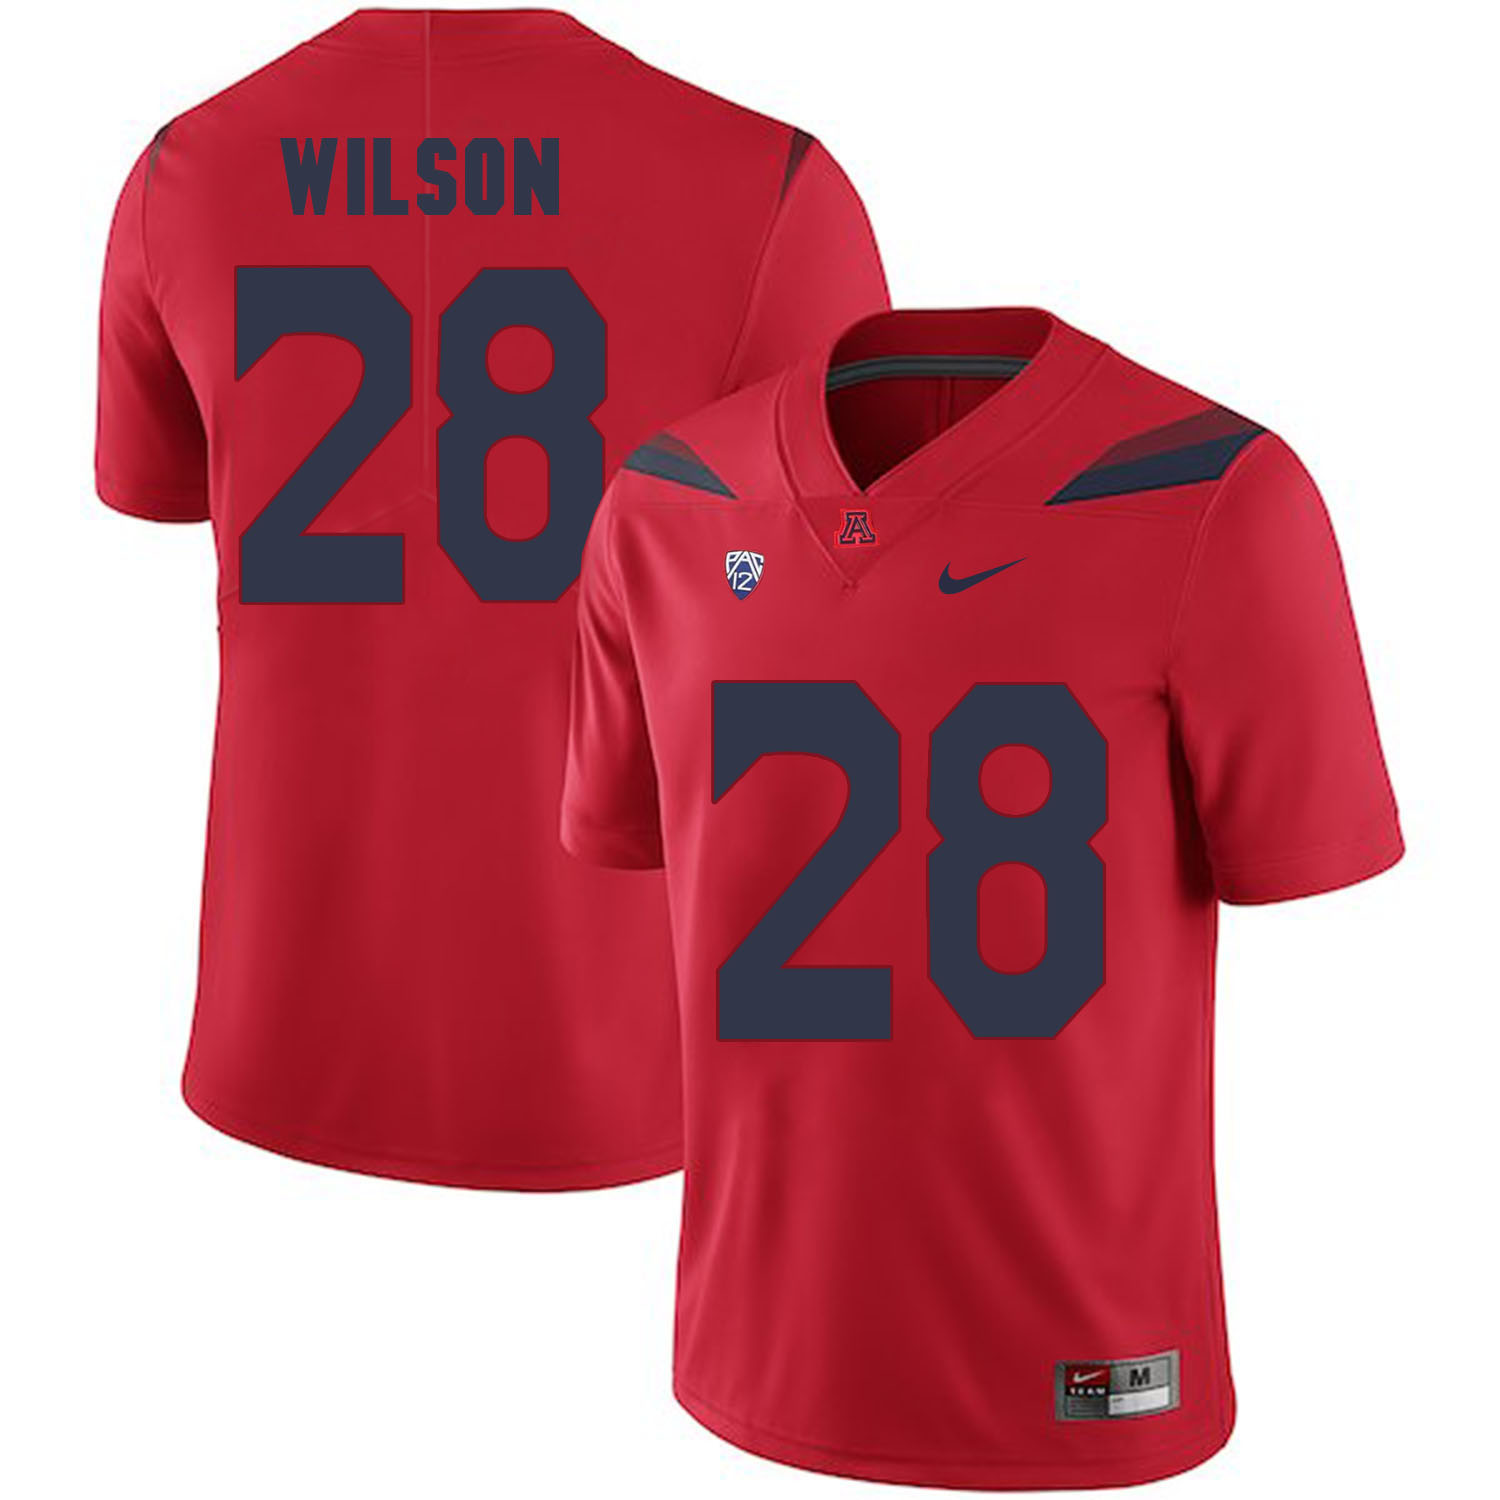 Arizona Wildcats 28 Nick Wilson Red College Football Jersey